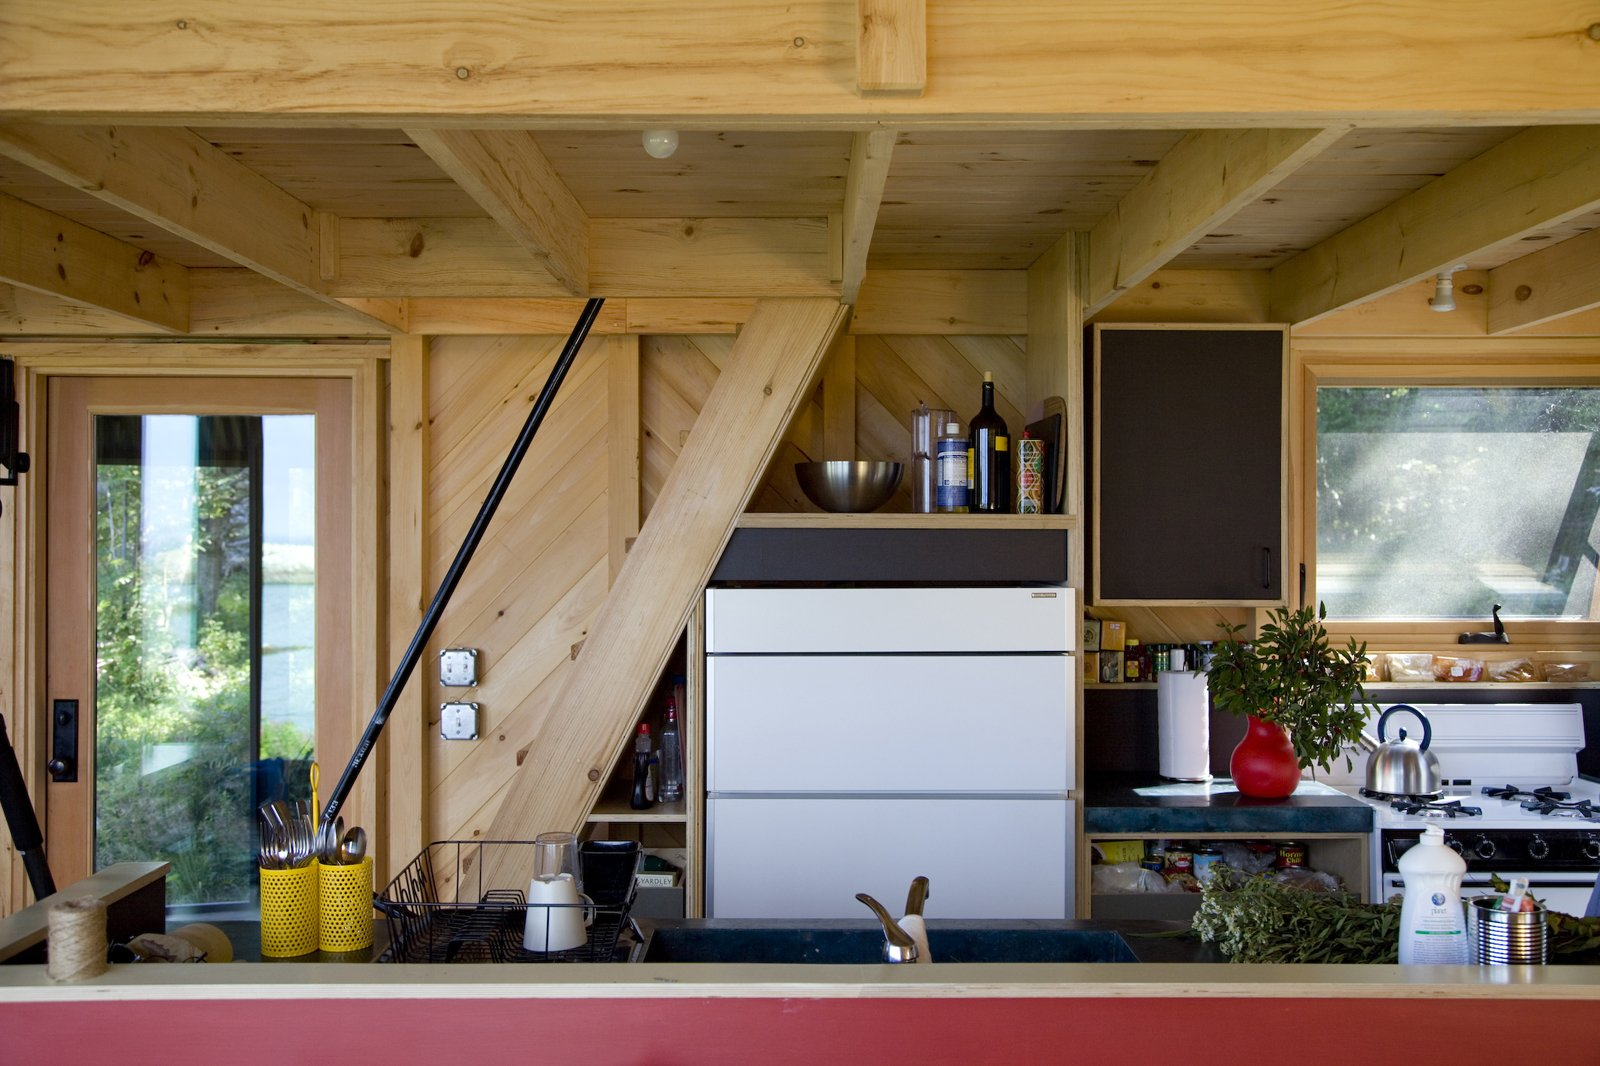 The Sunfrost refrigerator nearly disappears into the simple kitchen.  Photo 17 of 21 in A Tiny Cabin is This Writer's Off the Grid Getaway